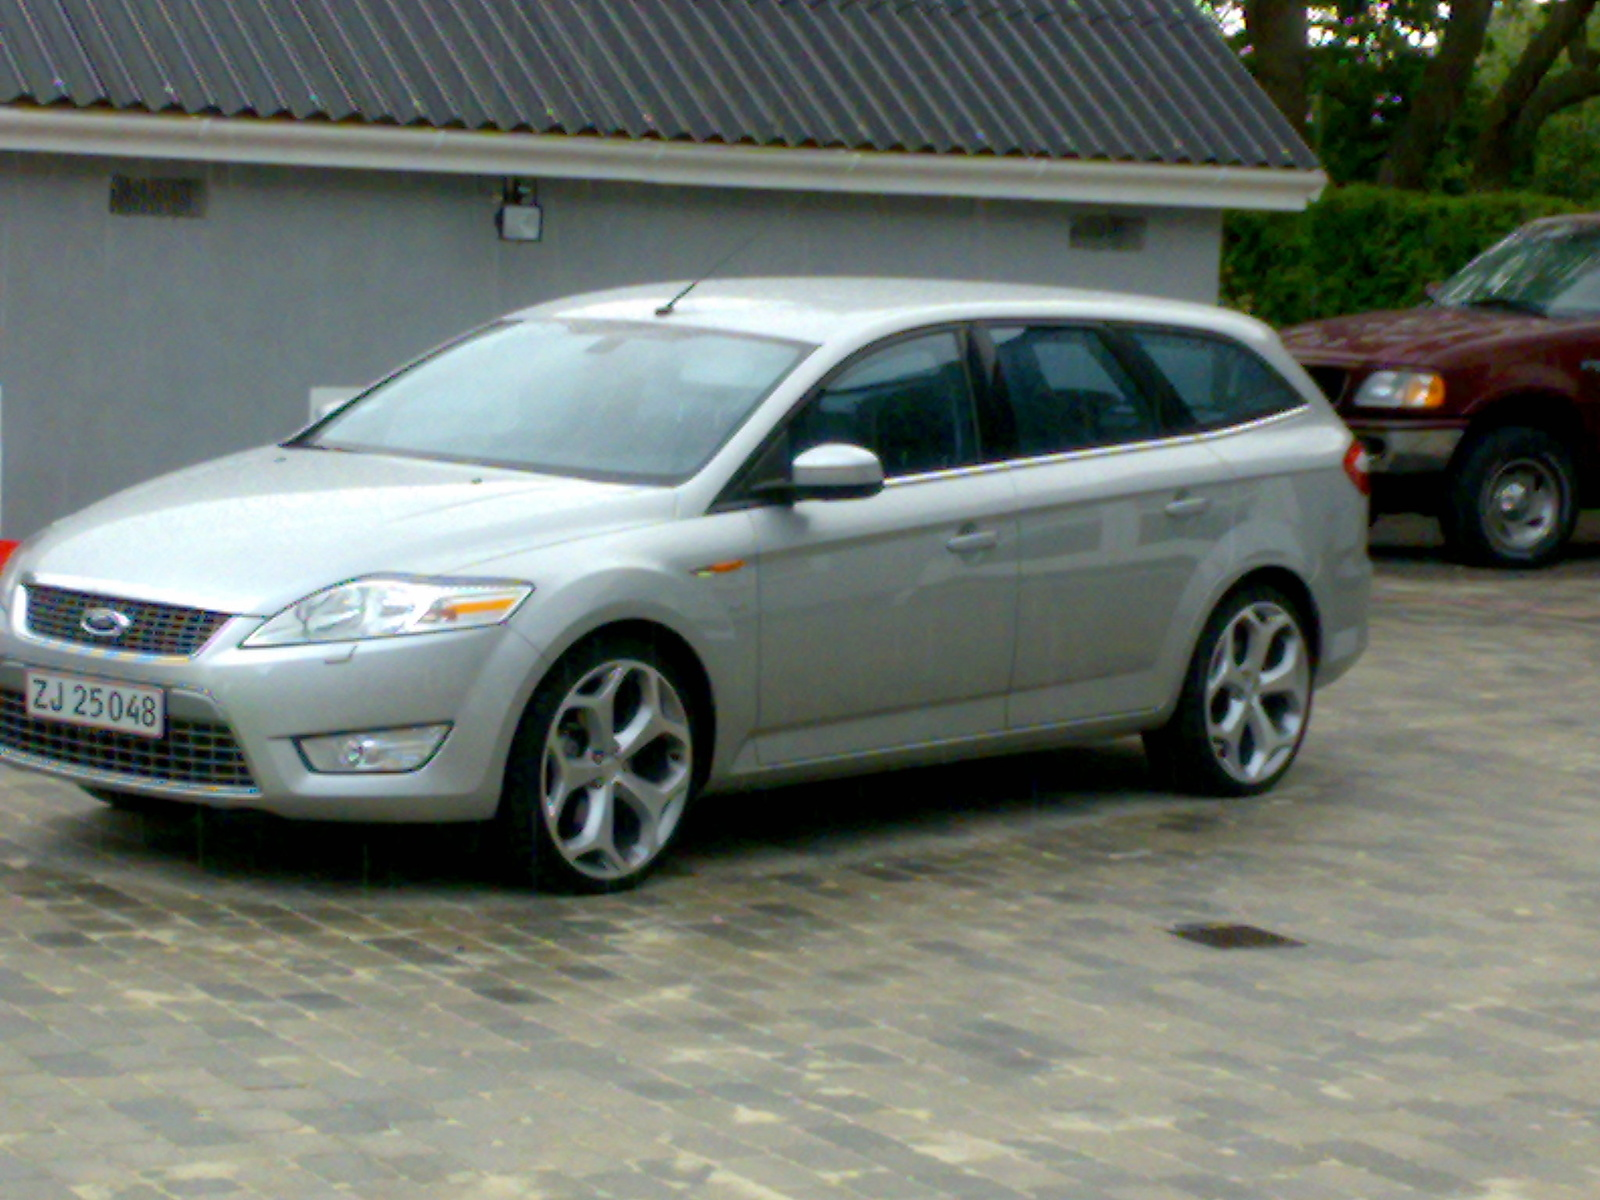 2007 Ford Mondeo photo - 1